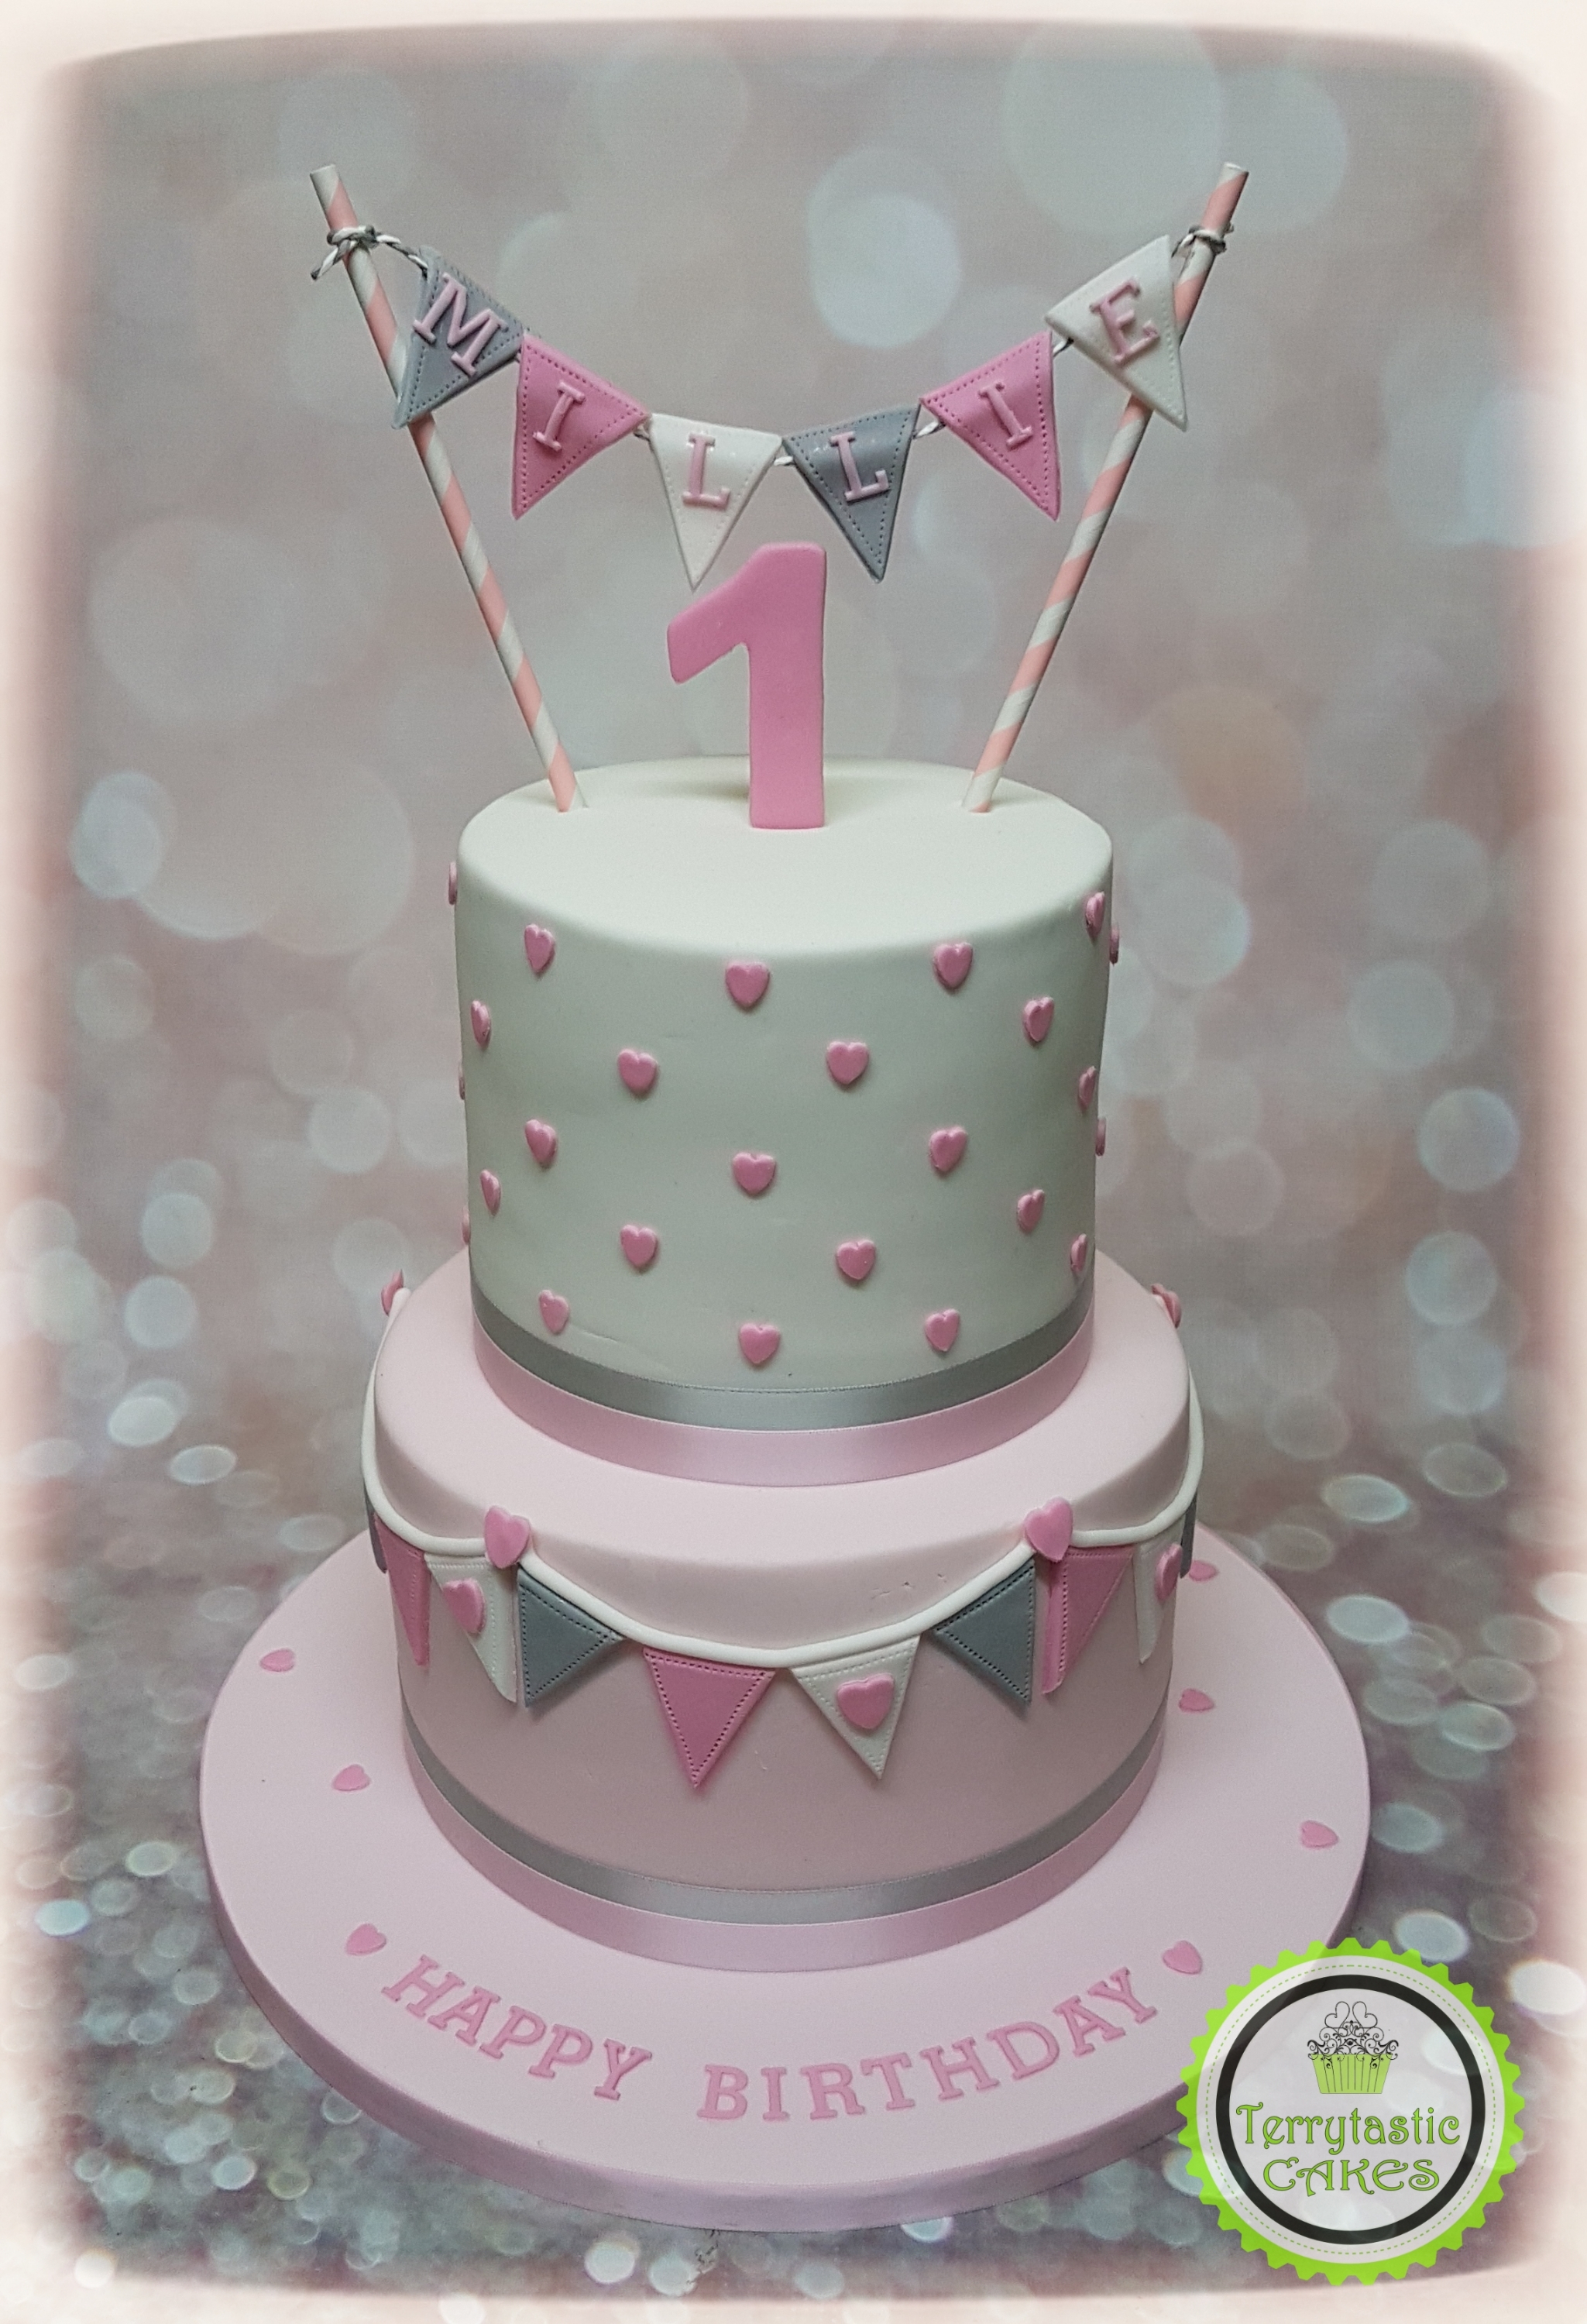 Swell 1St Birthday Cake Girl Top Birthday Cake Pictures Photos Images Personalised Birthday Cards Veneteletsinfo